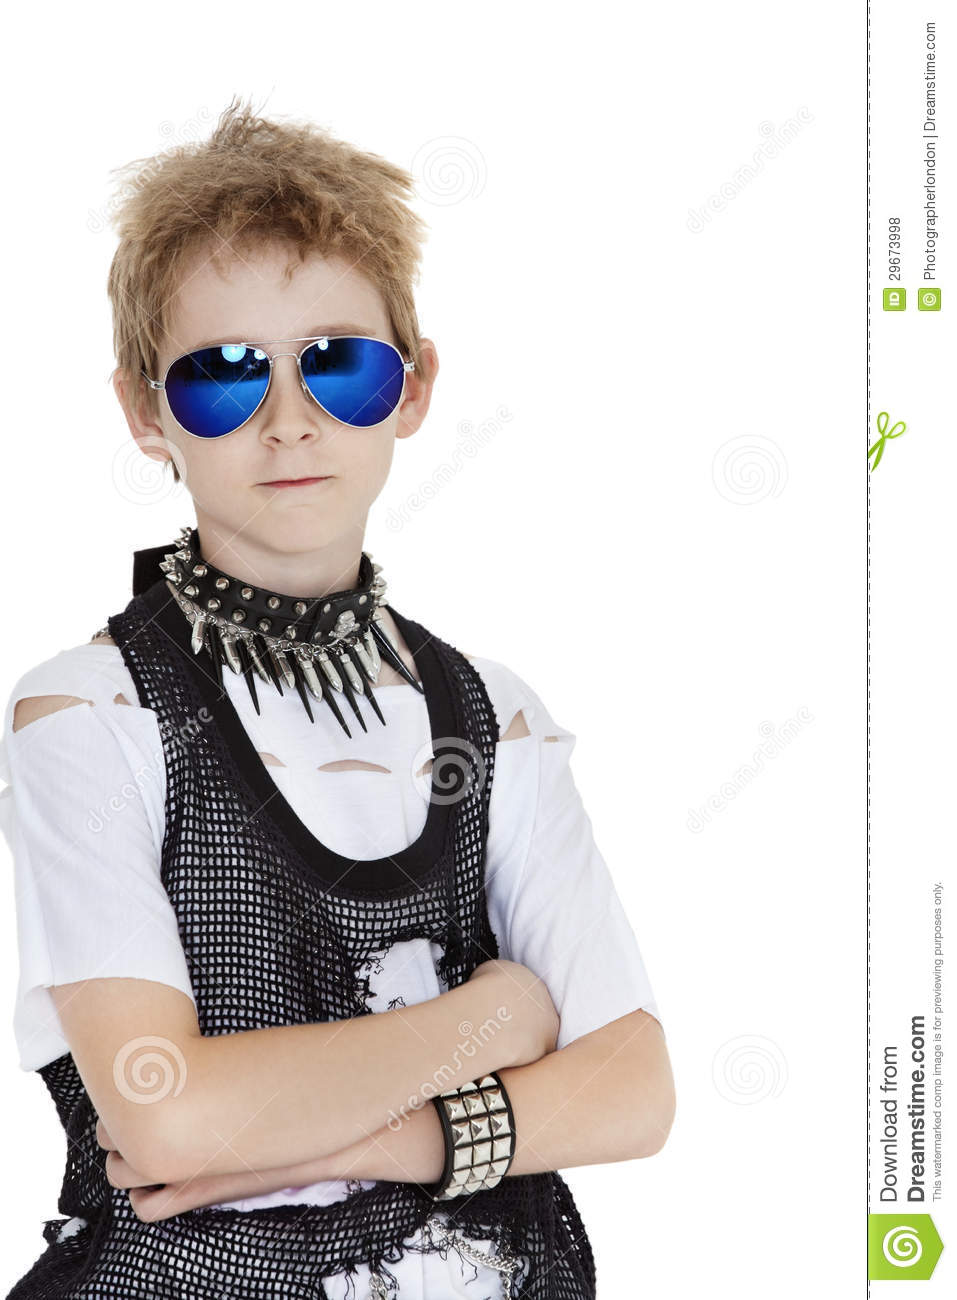 Portrait Of Punk Pre Teen Boy Wearing Sunglasses With Arms